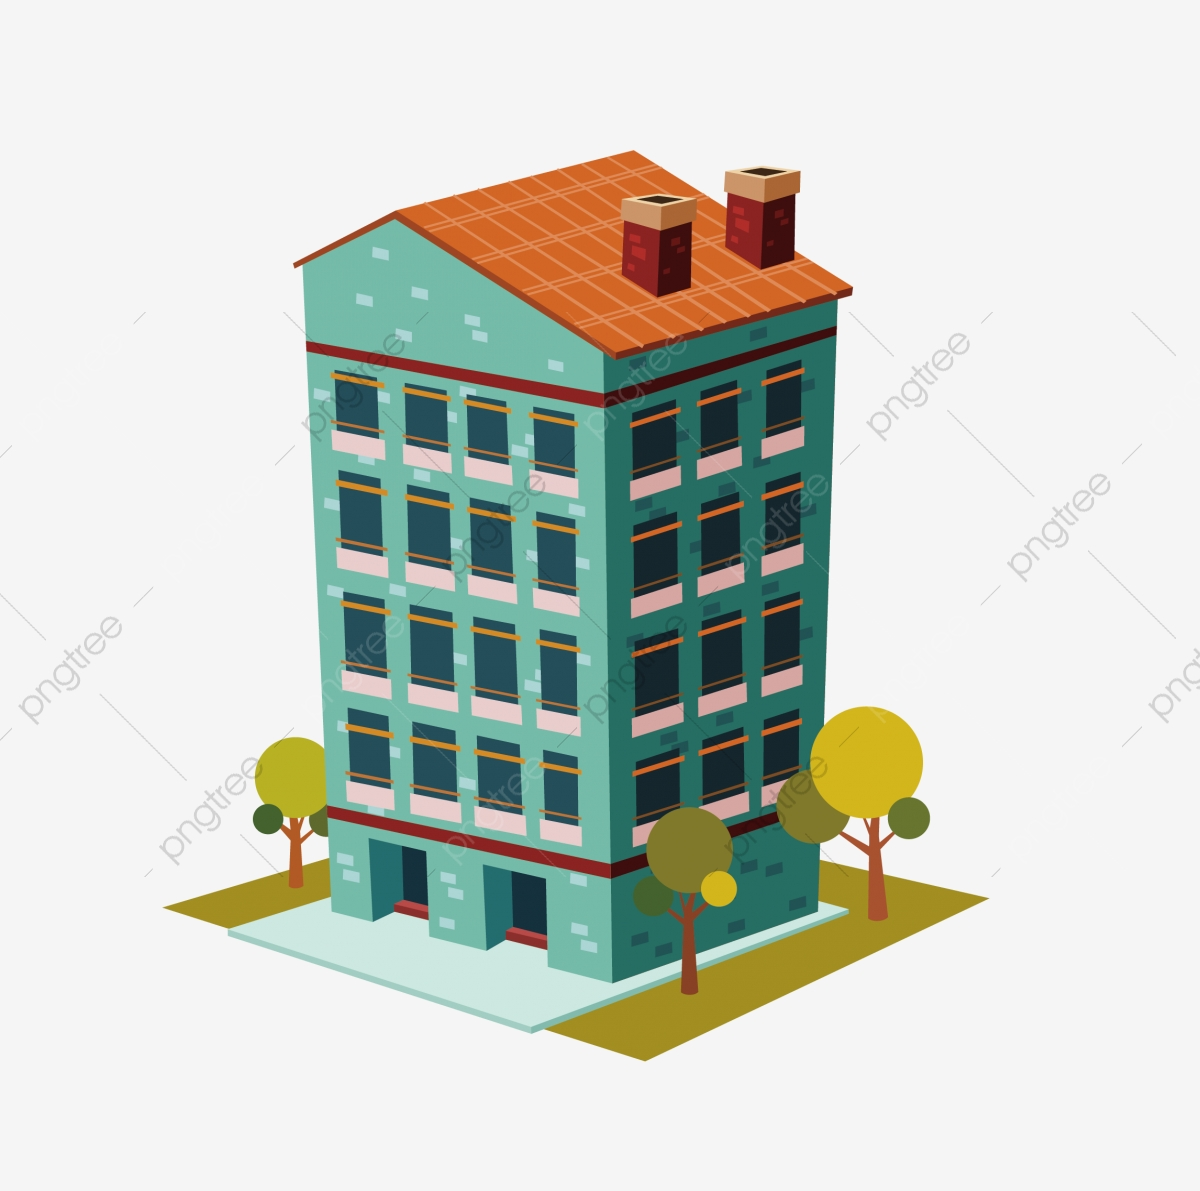 2 5d Building 2 5d Bungalow Building Bungalow, Cartoon House ...